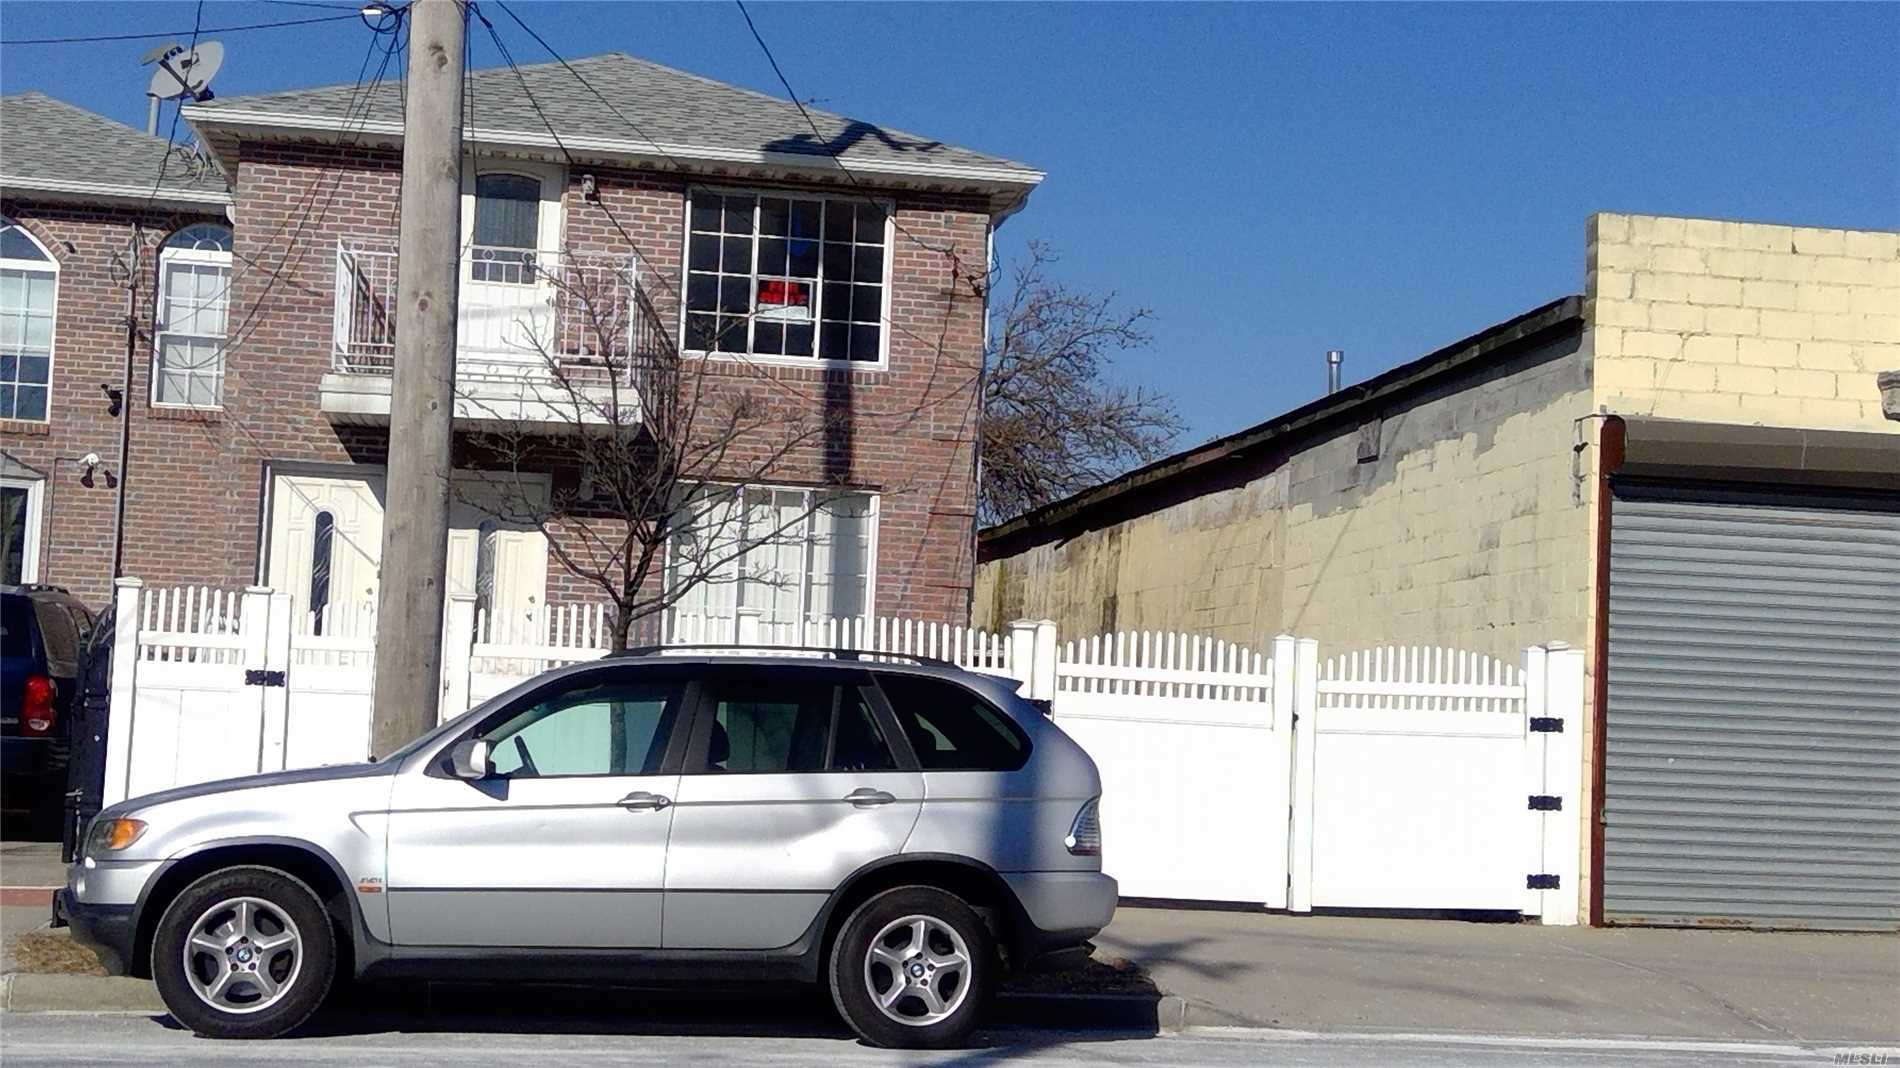 Fully Renovated New Stove, Master Bathroom With Jacuzzi, And Balcony. Three Blocks From A Train And Bus Q52, 1 Block From Q22. Close To Banks, Laundry, Supermarket, Three Blocks From Arverne By The Sea.